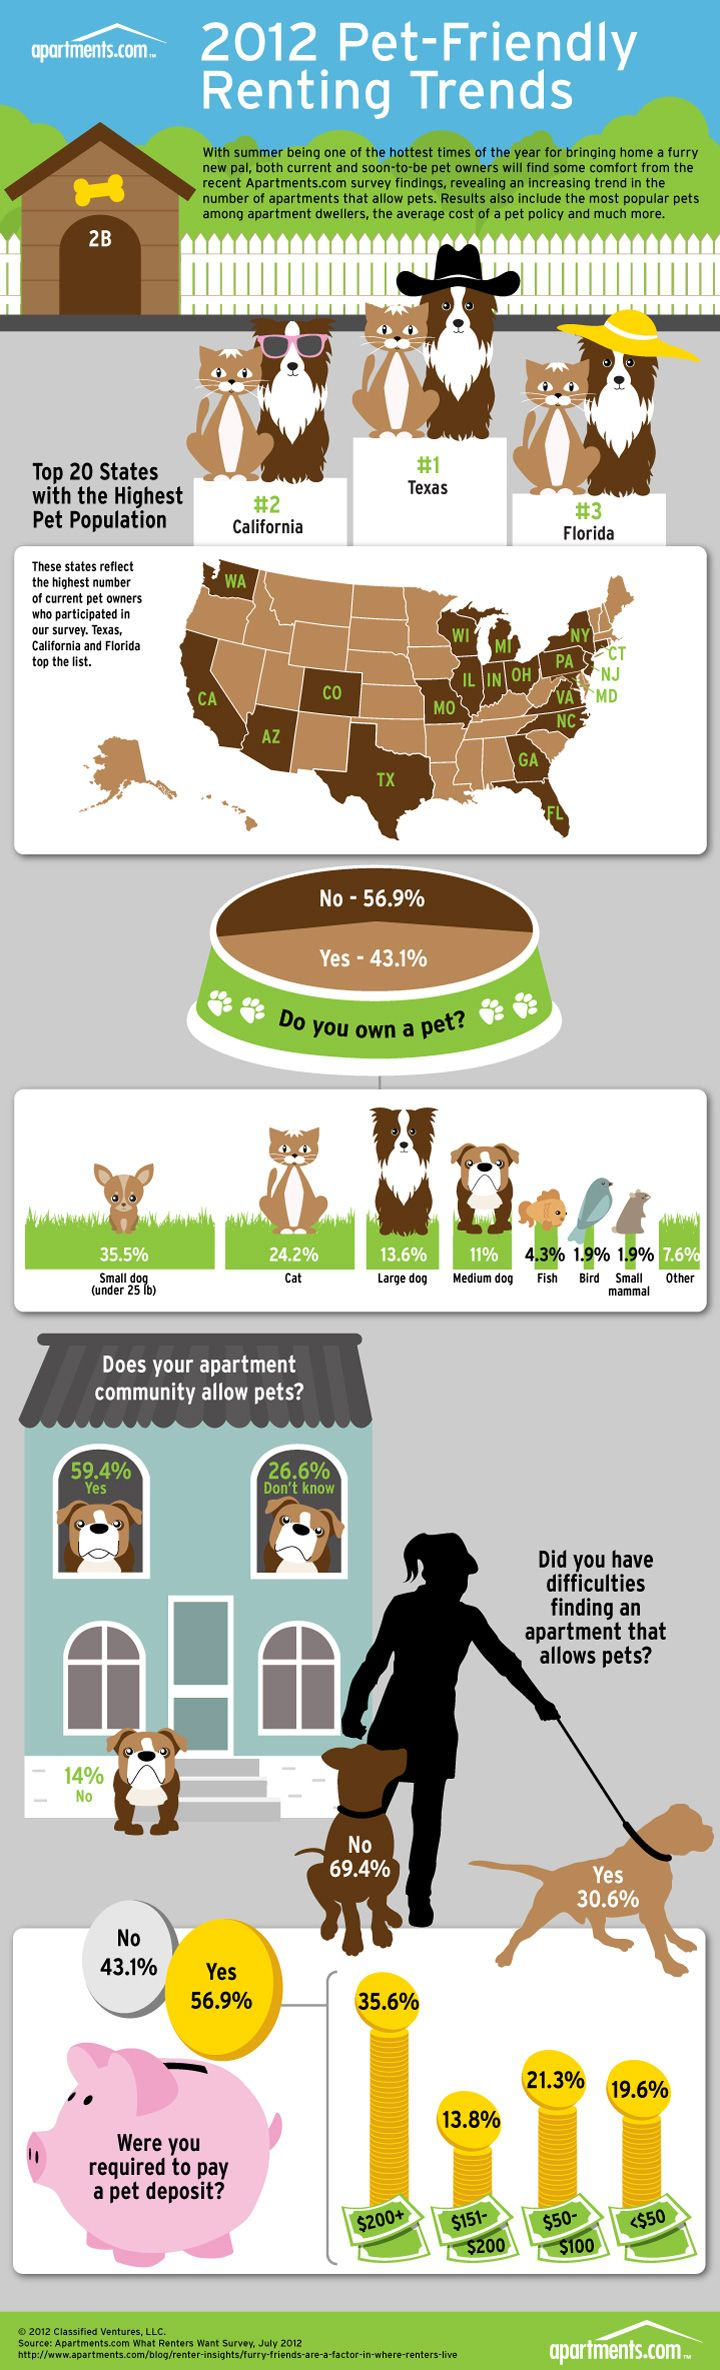 Study Shows that Pet Friendly Apartments are On the Rise -- Apartments Dot Com Infographic Renters with Pets